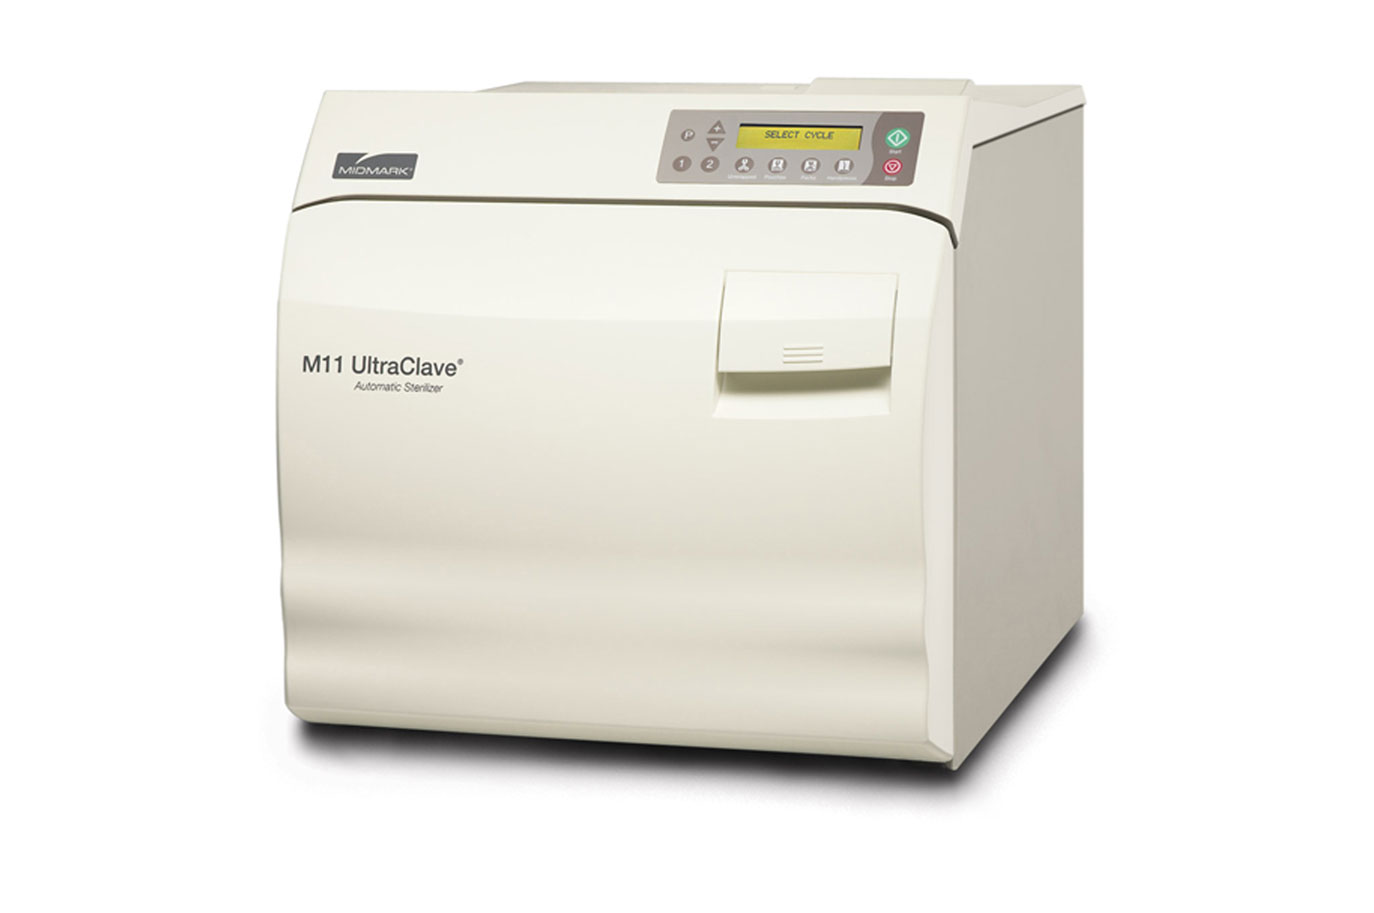 Midmark-M11-UltraClave-Automatic-Sterilizer